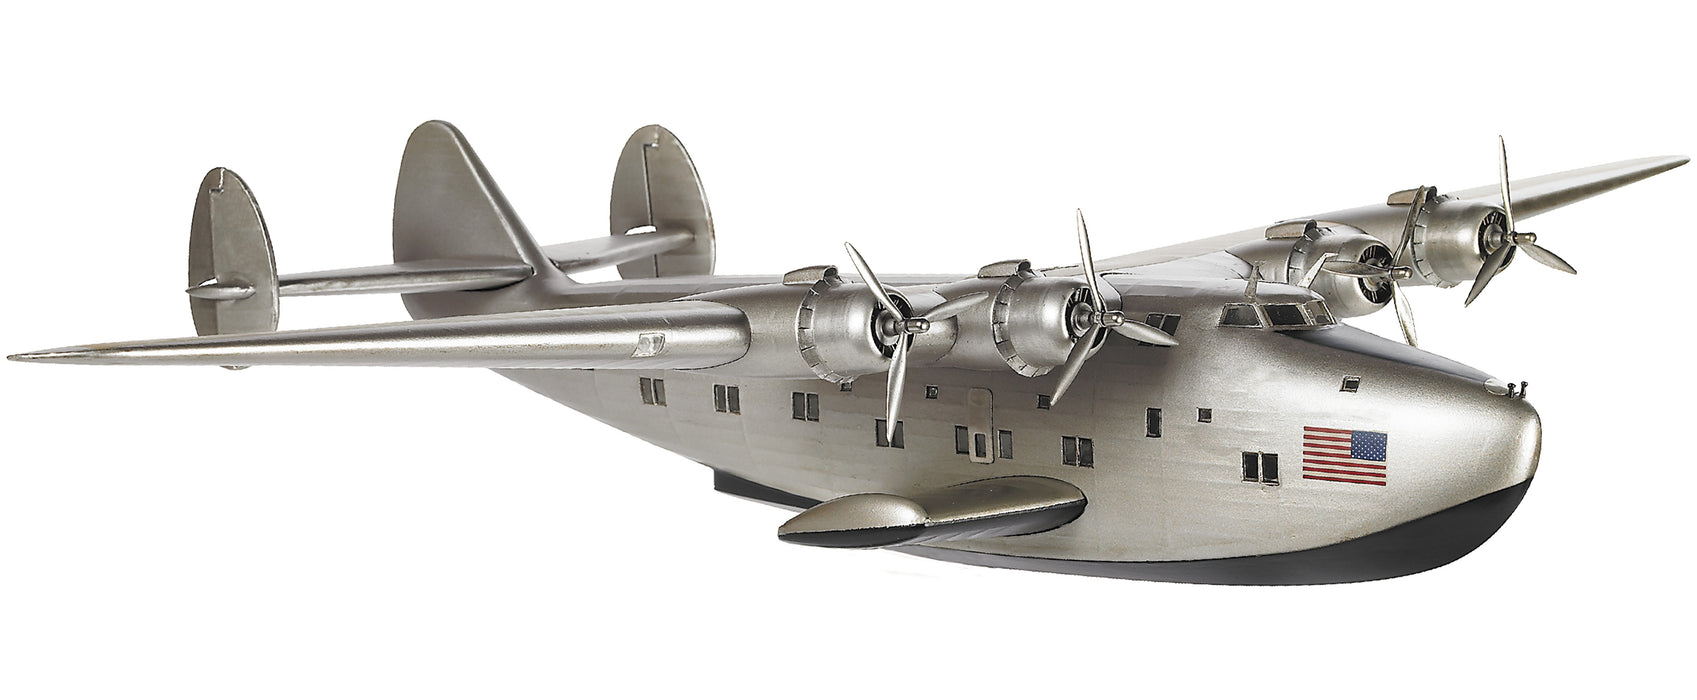 Boeing 314 'Dixie Clipper' - My Parlor Room